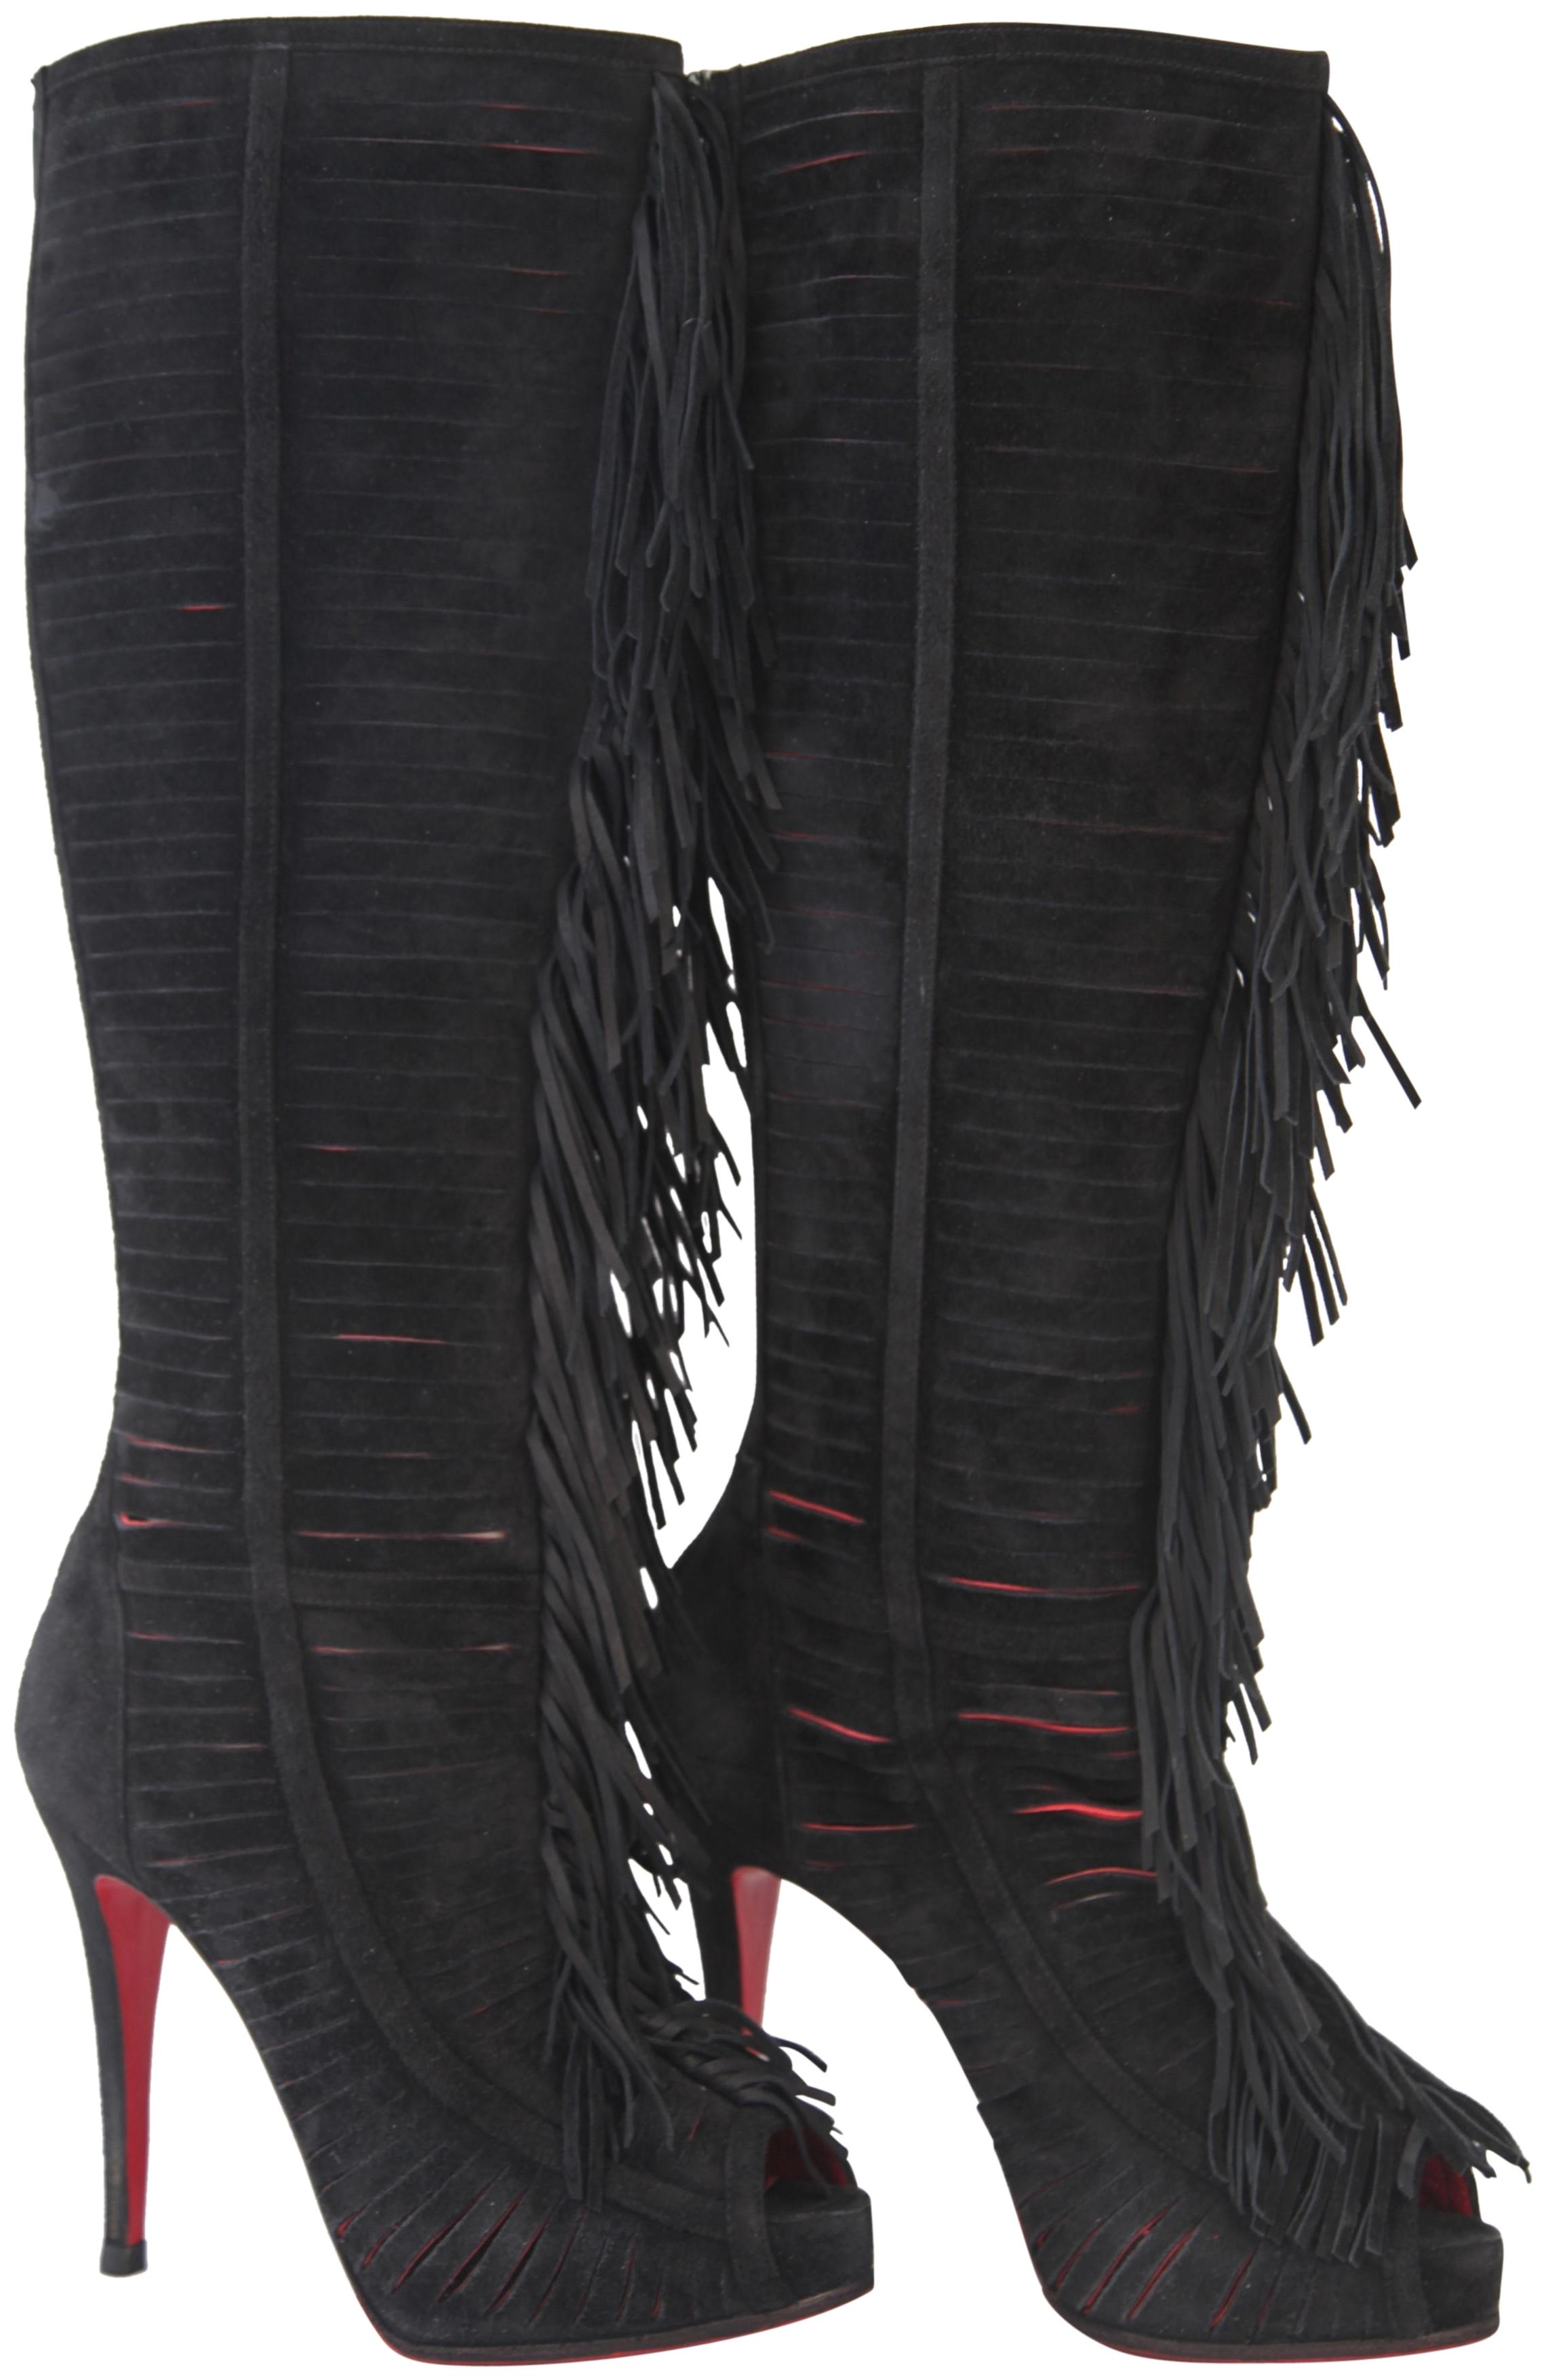 Christian Louboutin Black Devassima Platform Over Knee 38 It High Heel Lady Alti Red Zip Suede Boots/Booties Size US 8 Regular (M, B)